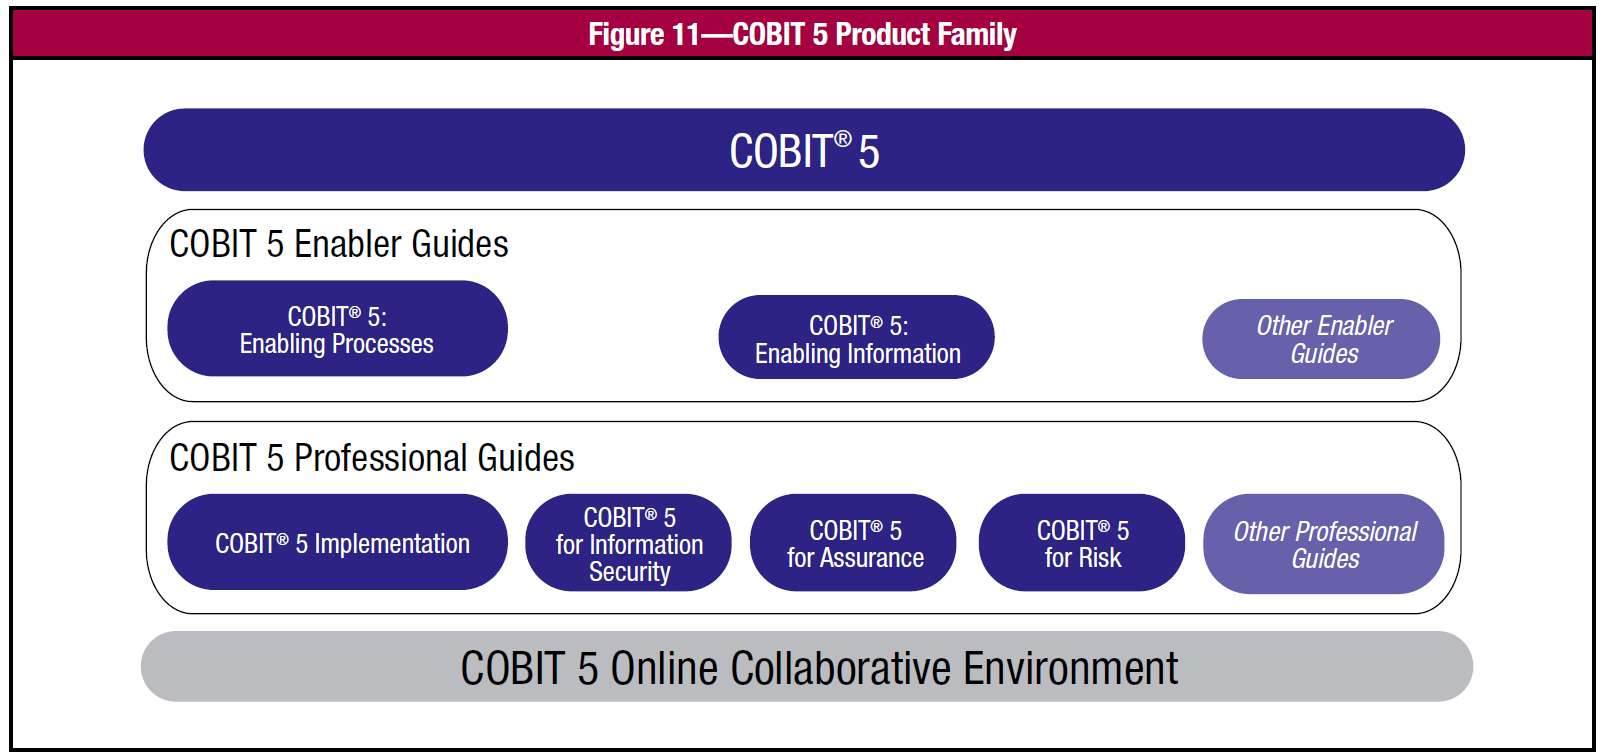 COBIT 4.1: DS 8.2 Assurance Steps 1. Confirm that processes and tools are in placeto register customer queries, status, and actionstowards resolution 2.